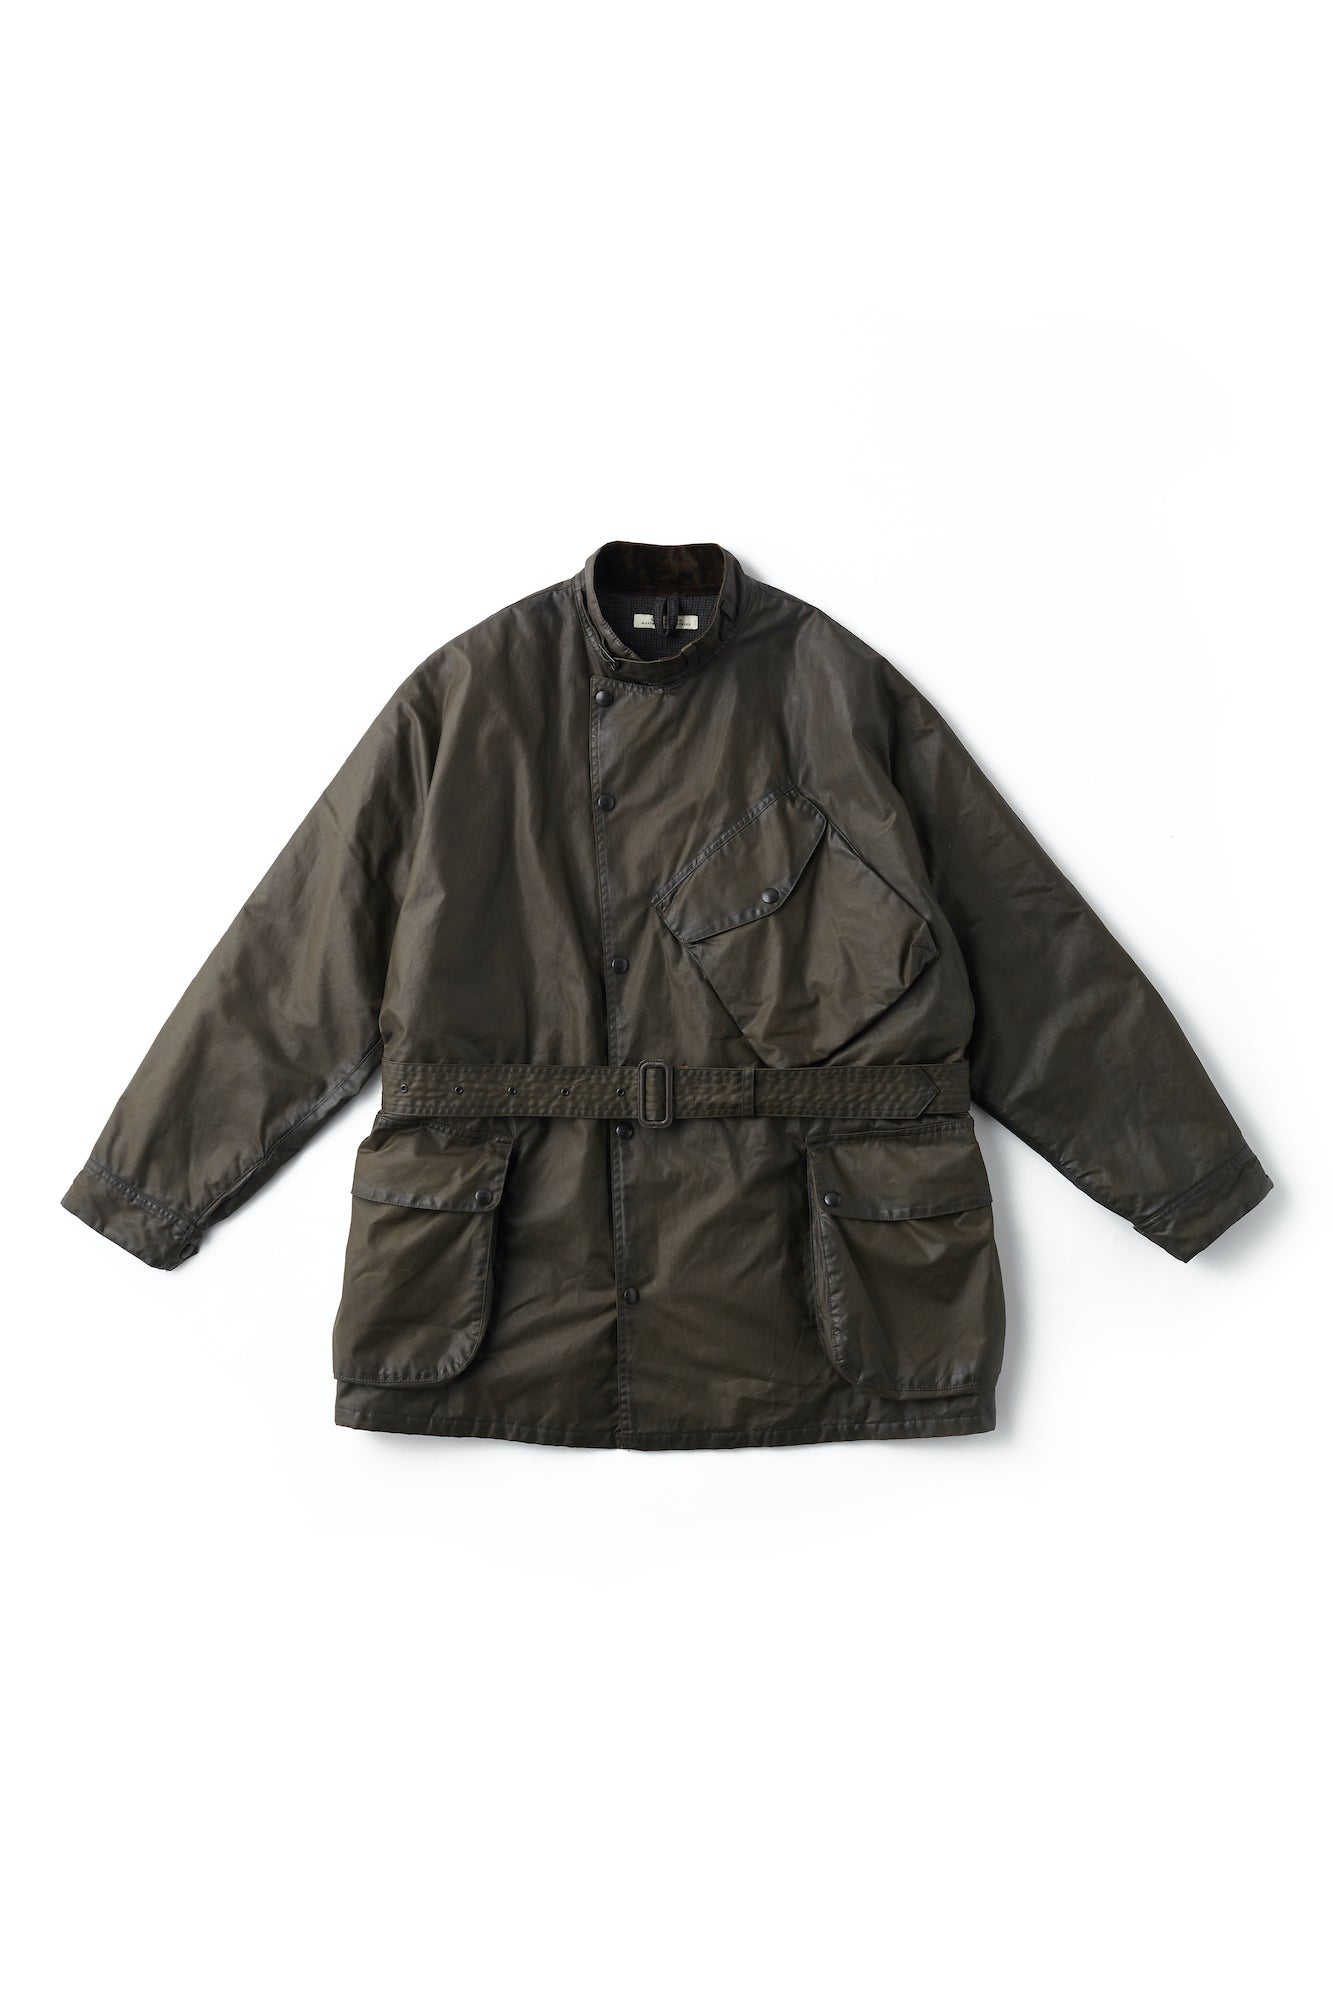 WAXED BLACK PANTHER JACKET - 192OJ-JK06